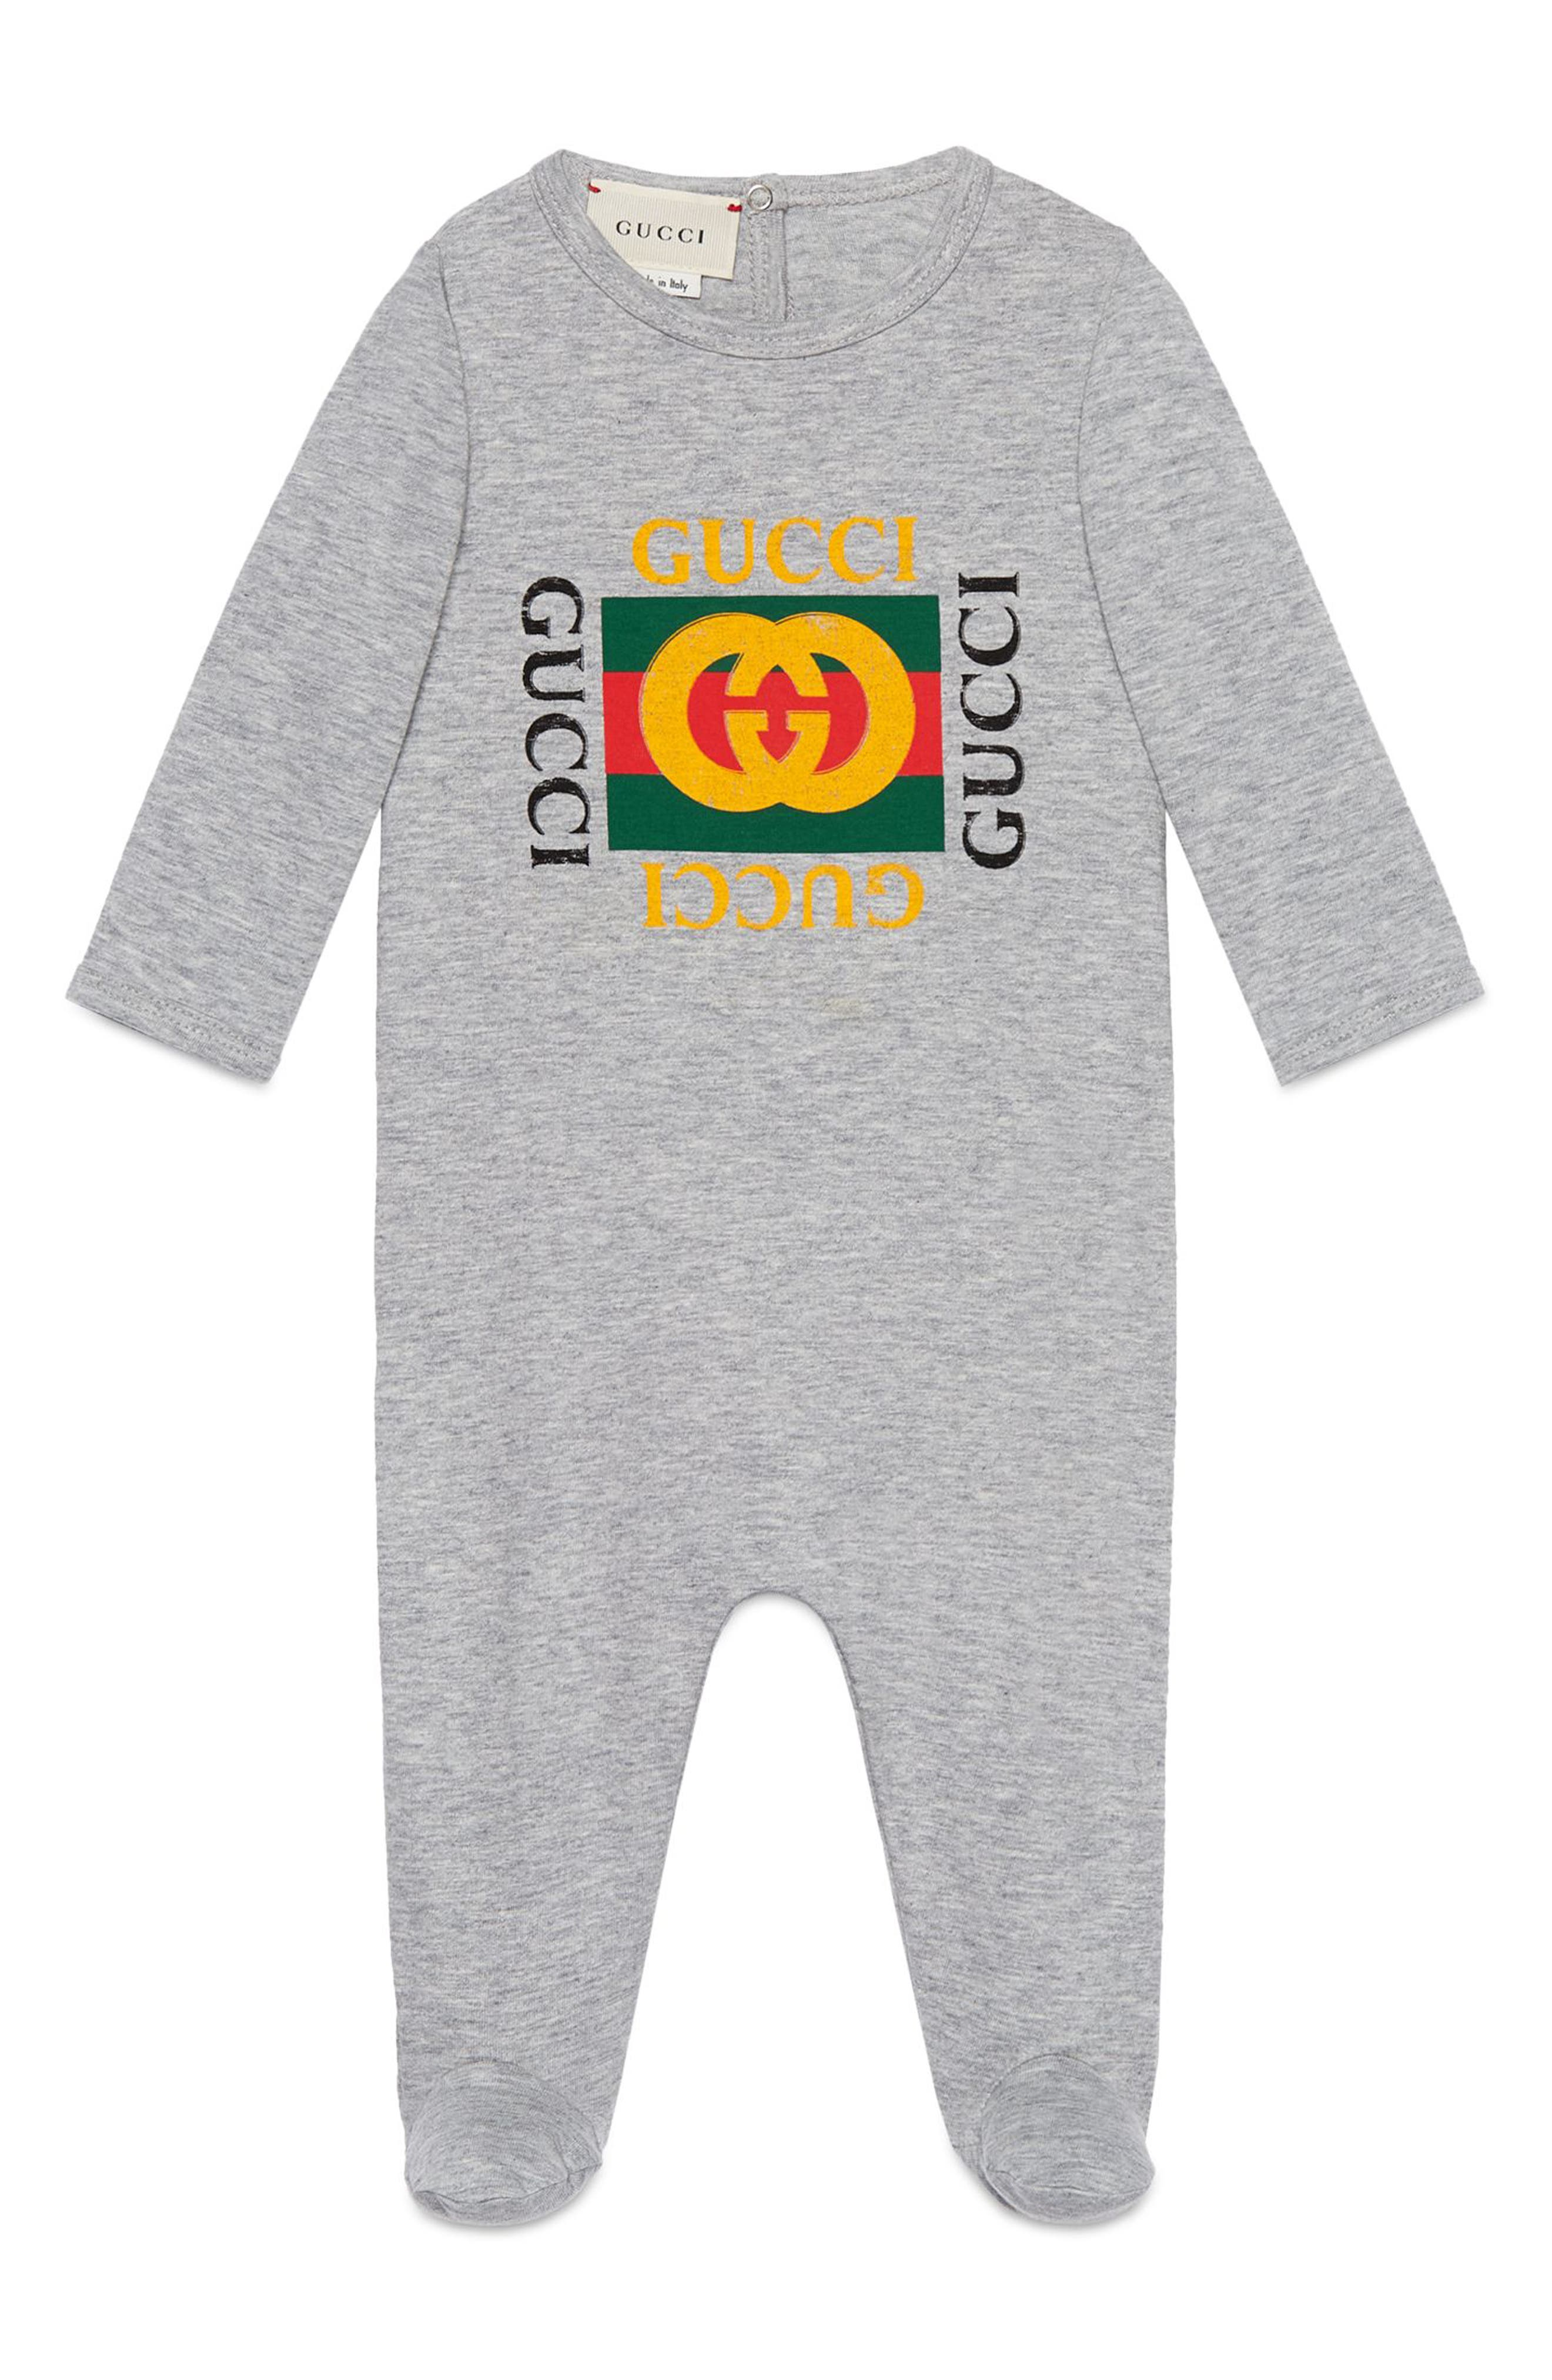 0646ab596 Gucci Baby Clothing | Nordstrom